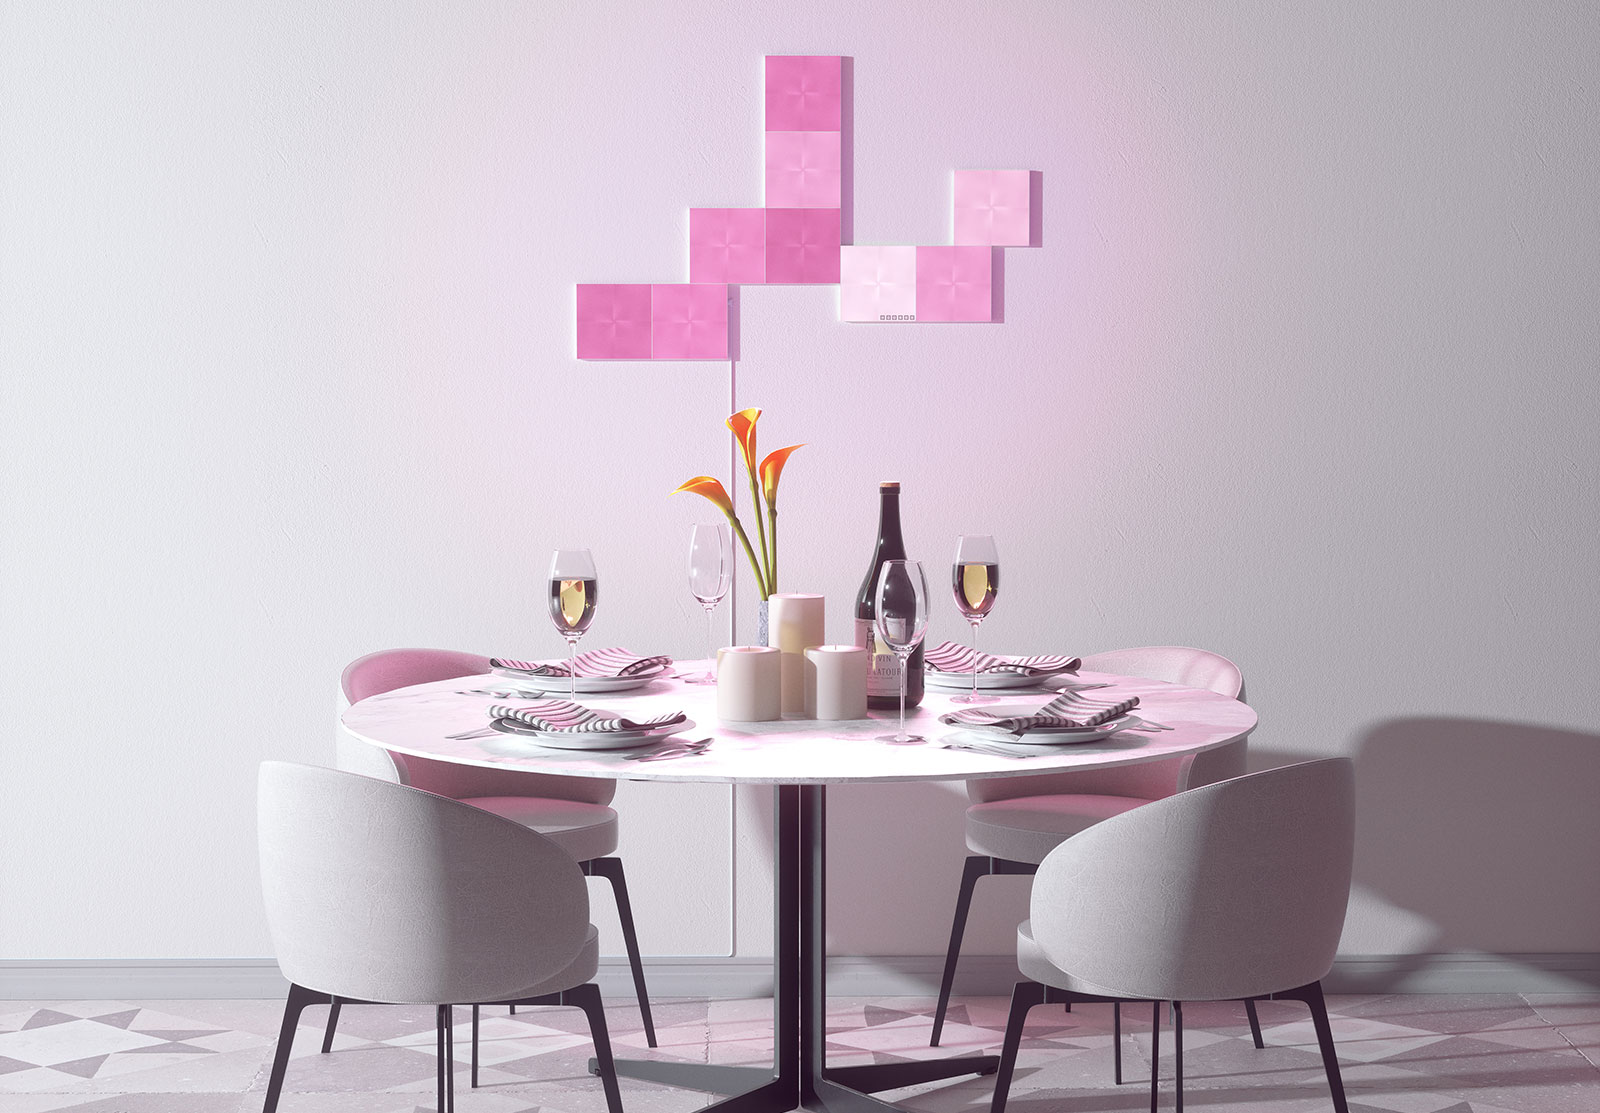 Jb Hi Fi Lighting Nanoleaf Canvas Turns Your Wall Into A Painted Scene Pickr